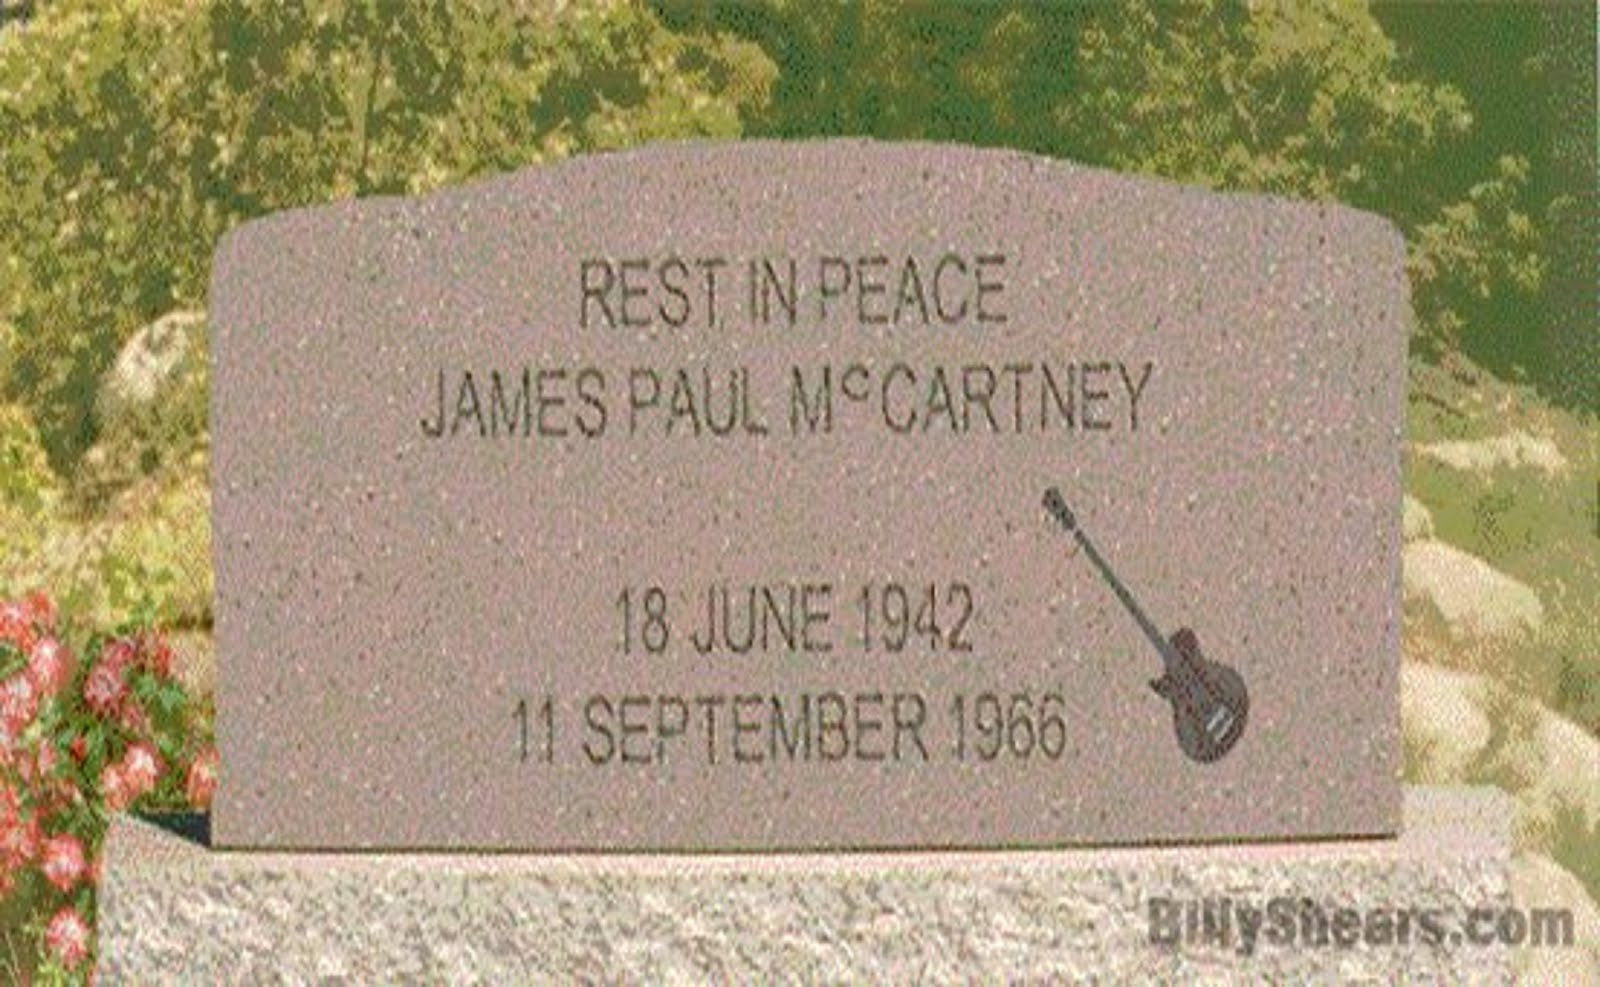 (BEATLE) - JAMES PAUL McCARTNEY - 18 JUNE 1942 - 11 SEPTEMBER 1966